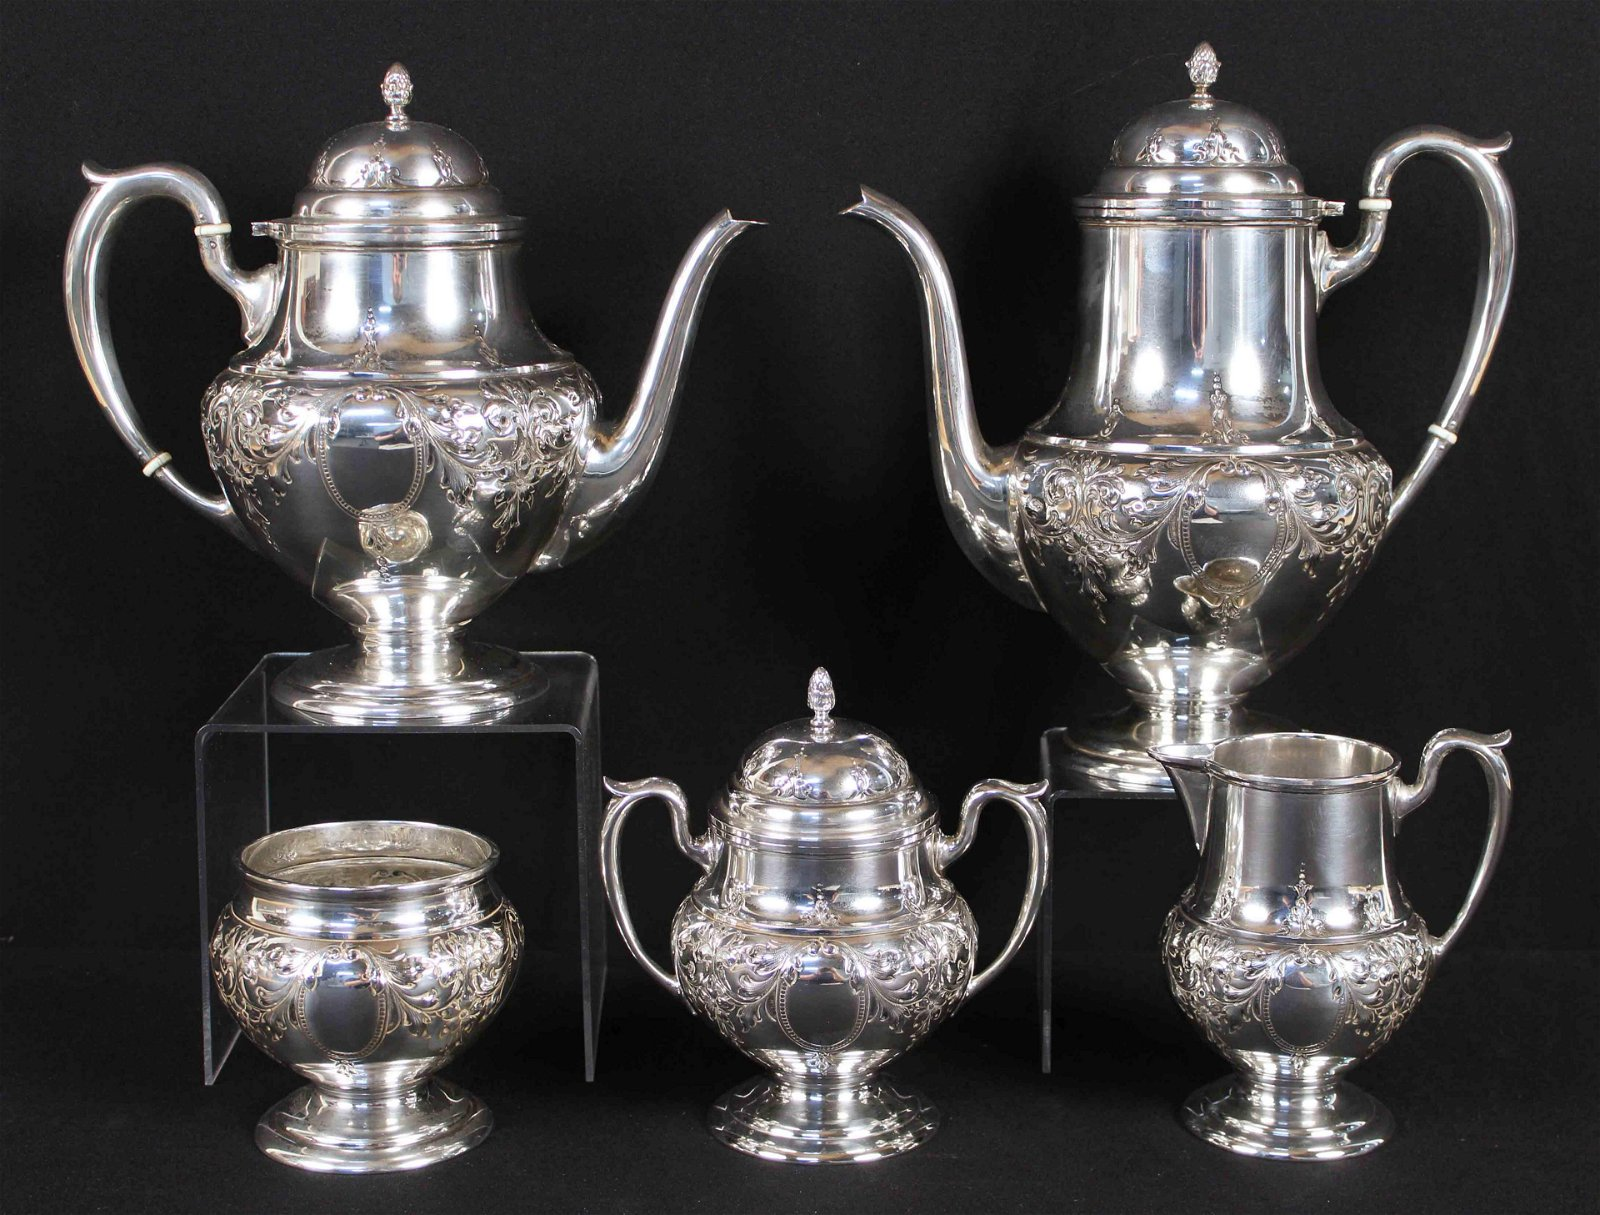 M. Fred Hirsch Co. Sterling Silver Tea Service